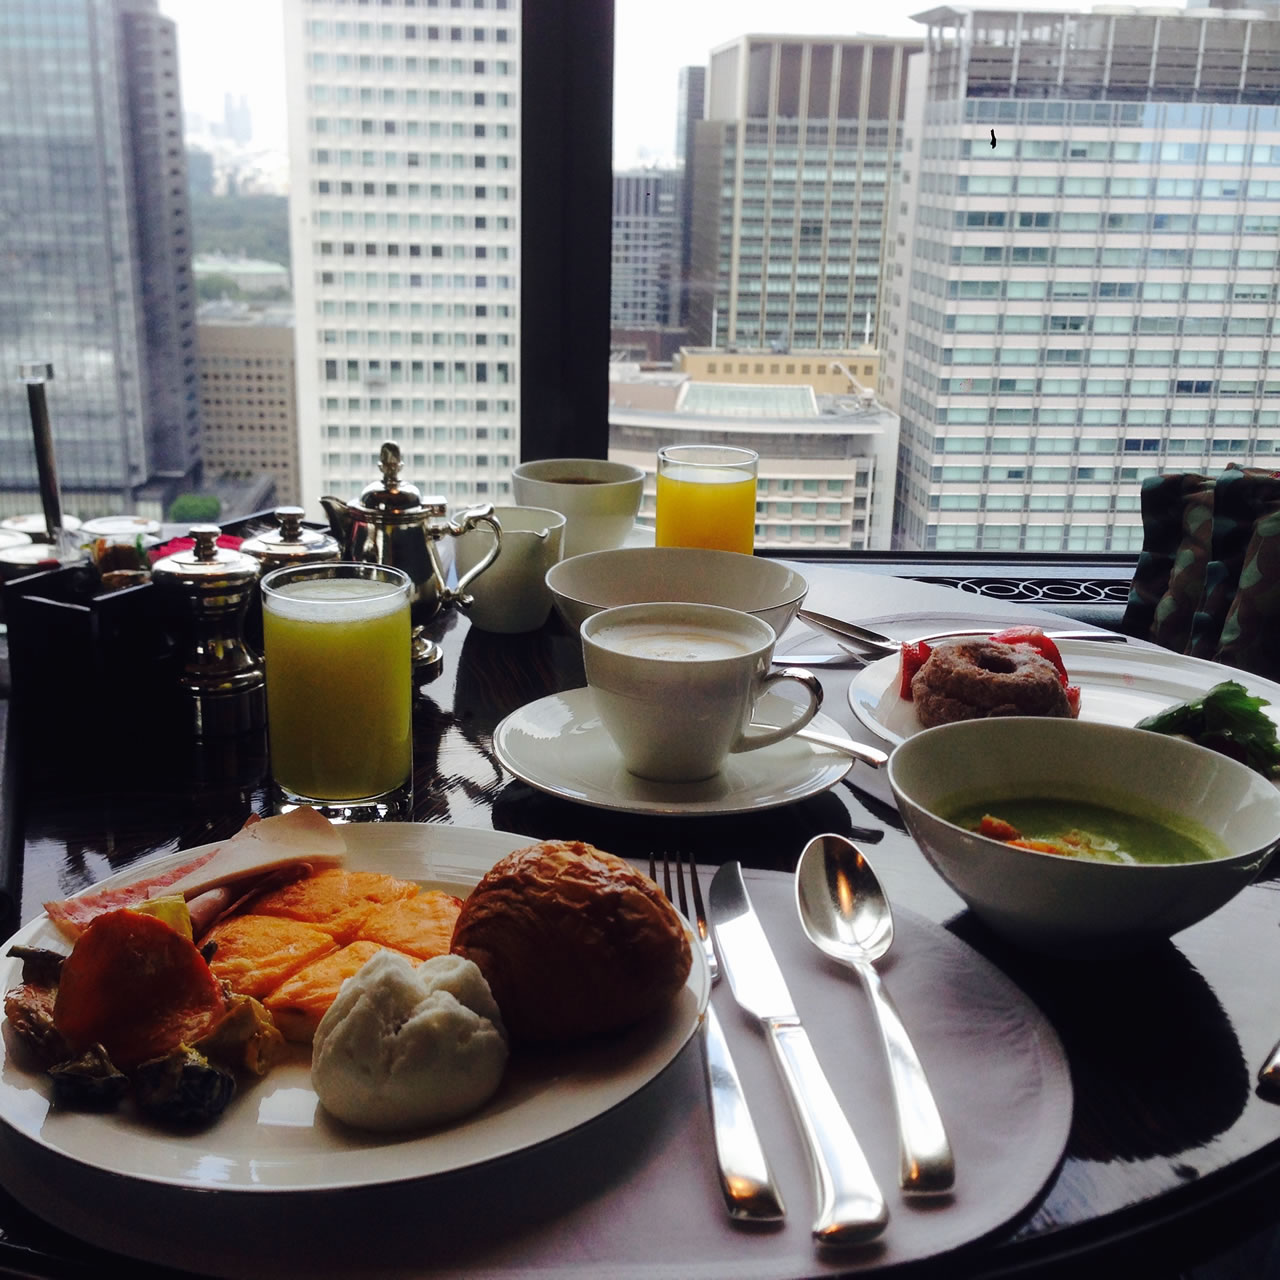 Breakfasting on Level 28, at the Italian restaurant Piacere